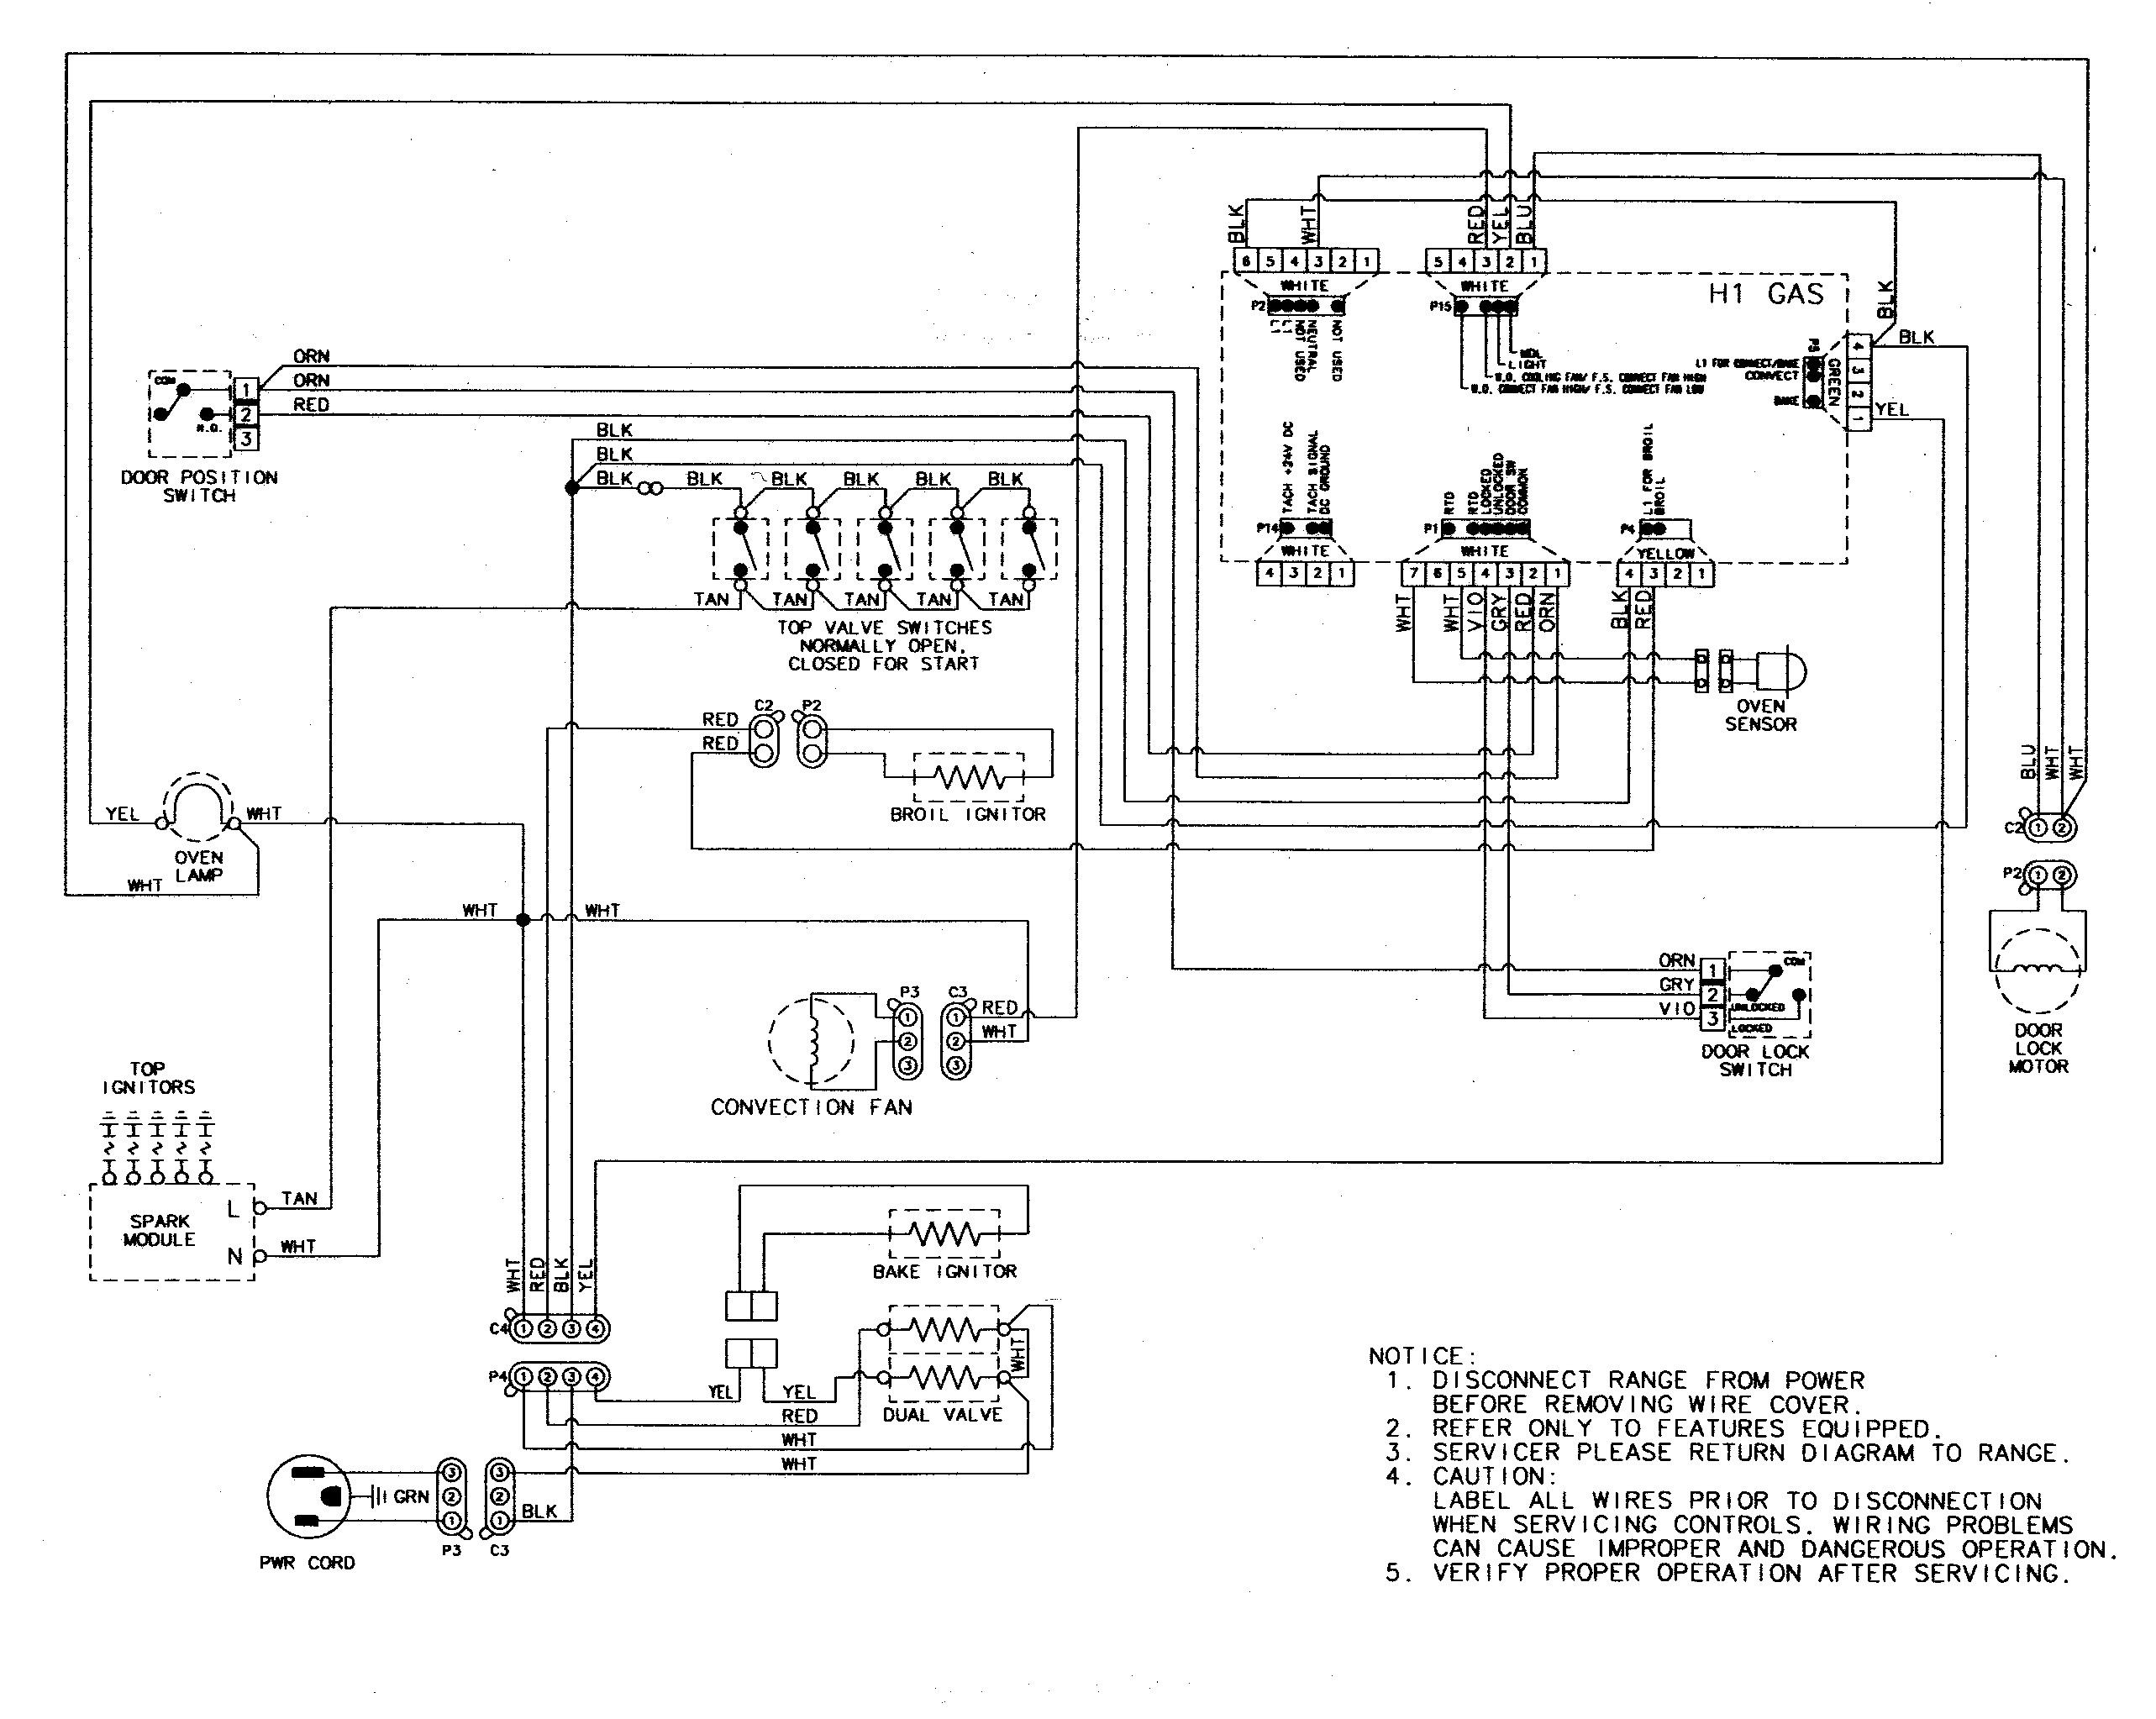 amana gas stove wiring enthusiast wiring diagrams u2022 rh rasalibre co Amana PTAC Wiring-Diagram Amana Washer Wiring Diagram